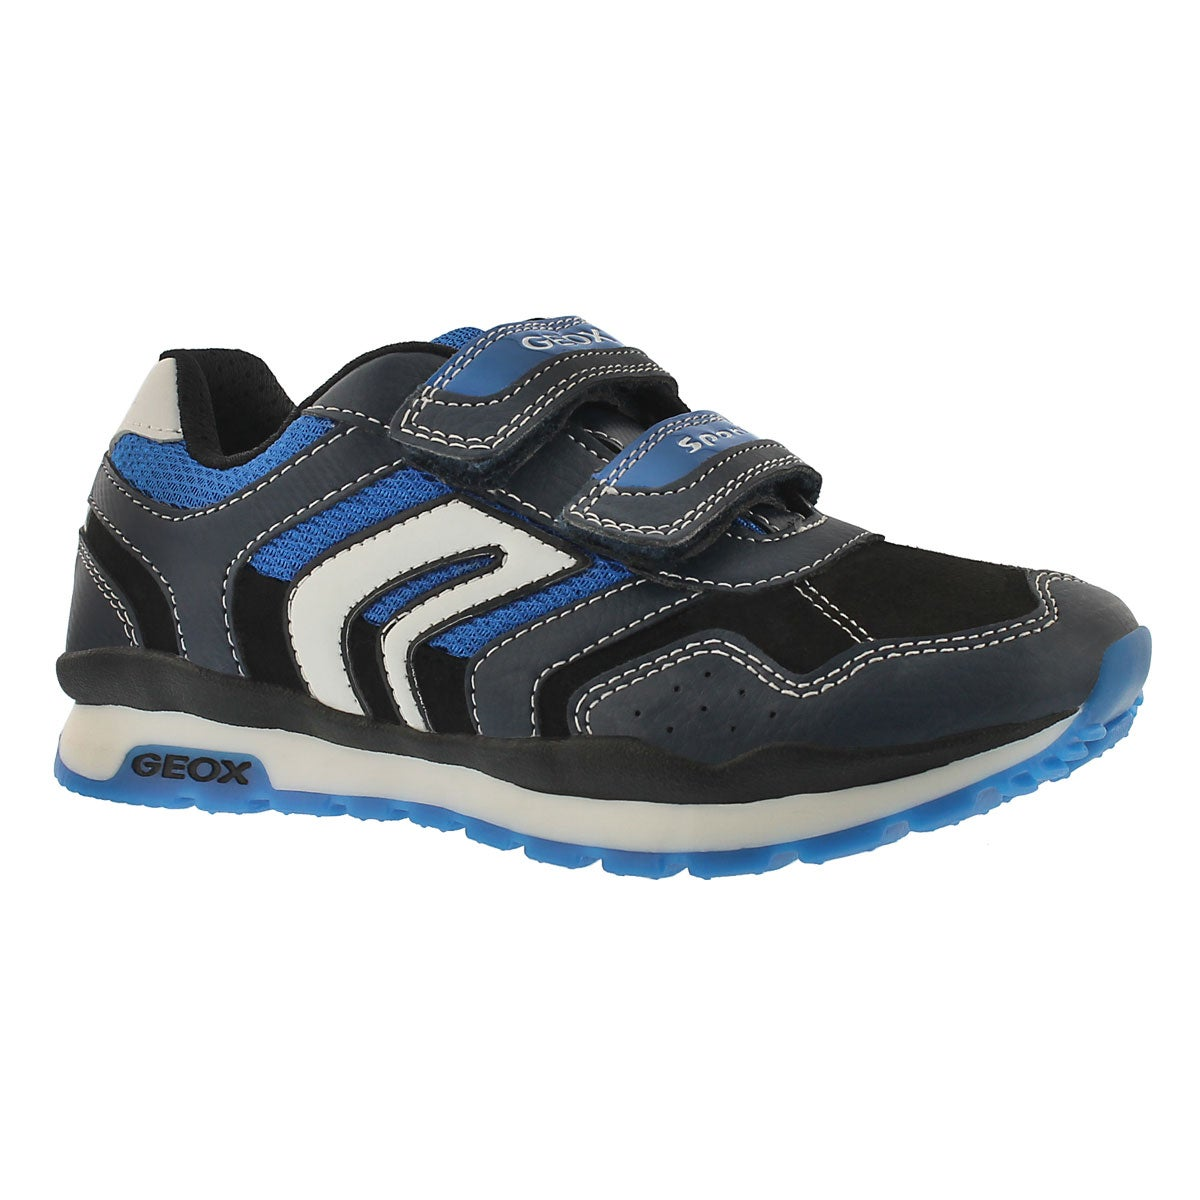 Boys' PAVEL navy hook & loop sneakers